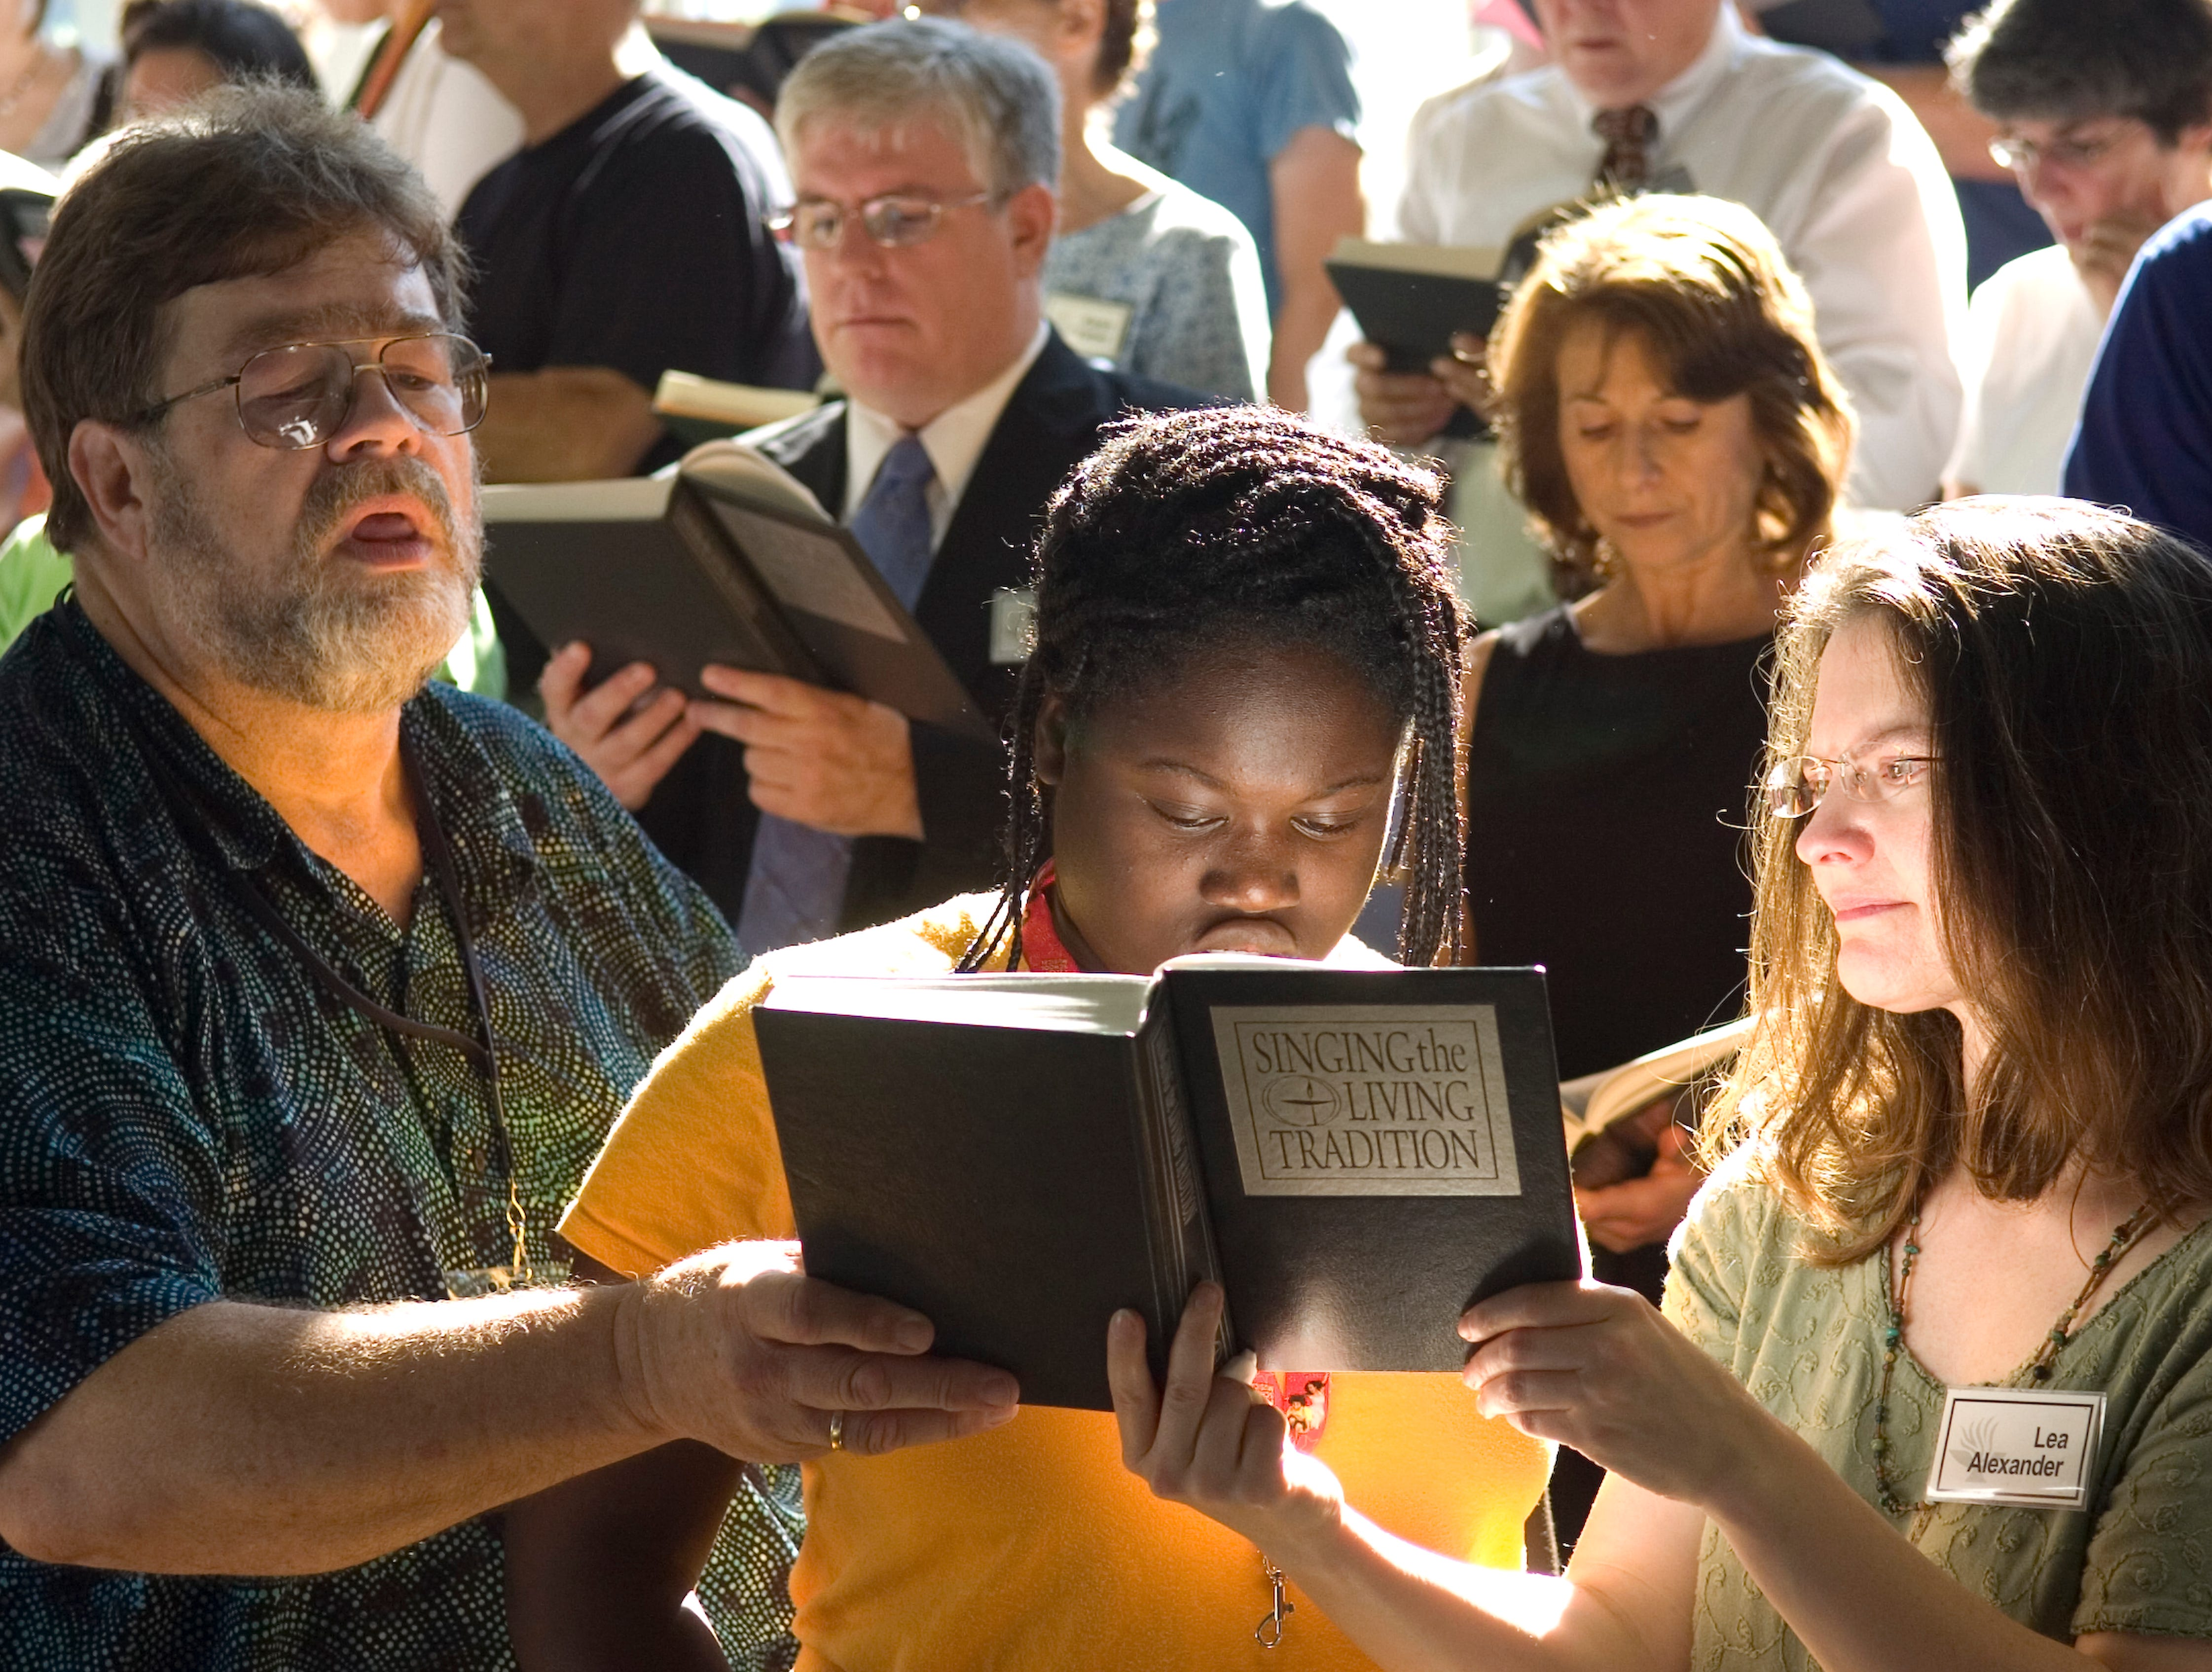 Haley Dockery, 14, center, sings from a hymnal held by her father Bill Dockery, left, with church member Lea Alexander Sunday during the sanctuary rededication services at the Tennessee Valley Unitarian Universalist Church where one week ago a gunman pulled a 12-gauge sawed-off shotgun from a guitar case and fired into the congregation.